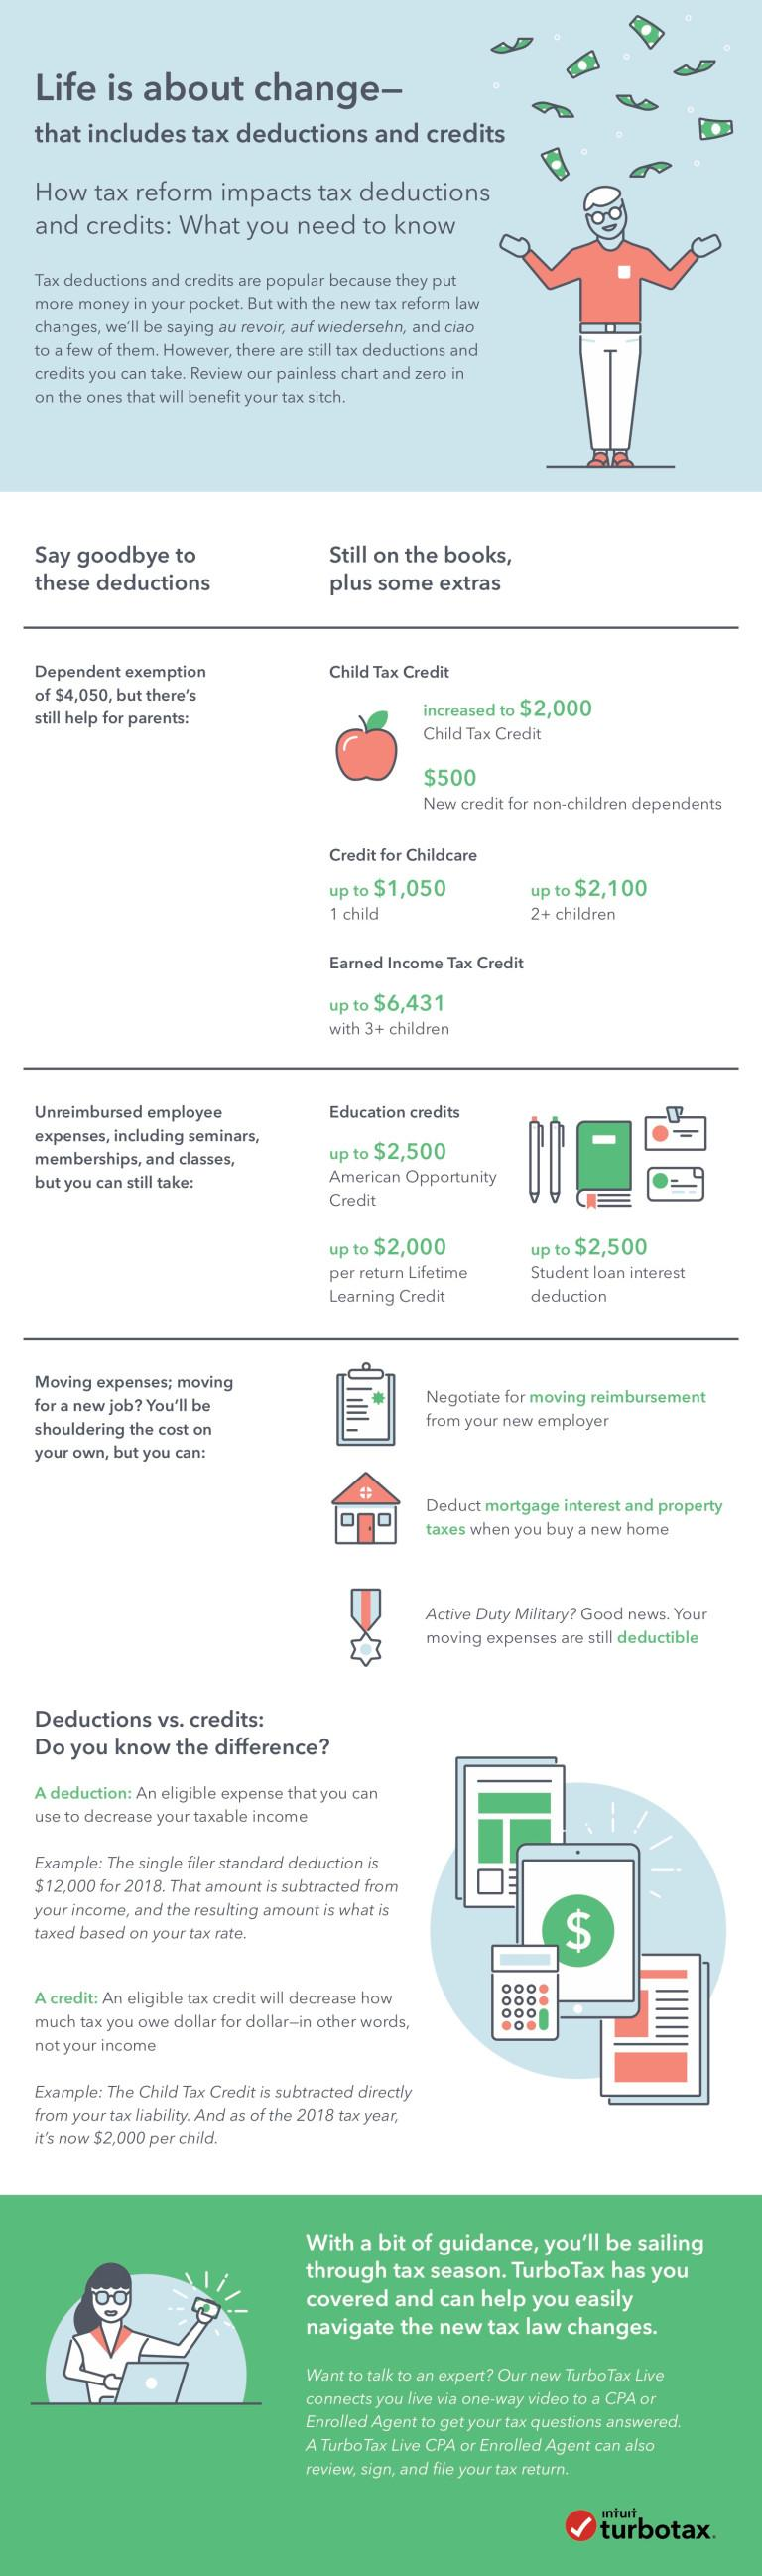 TurboTax infographic deductions